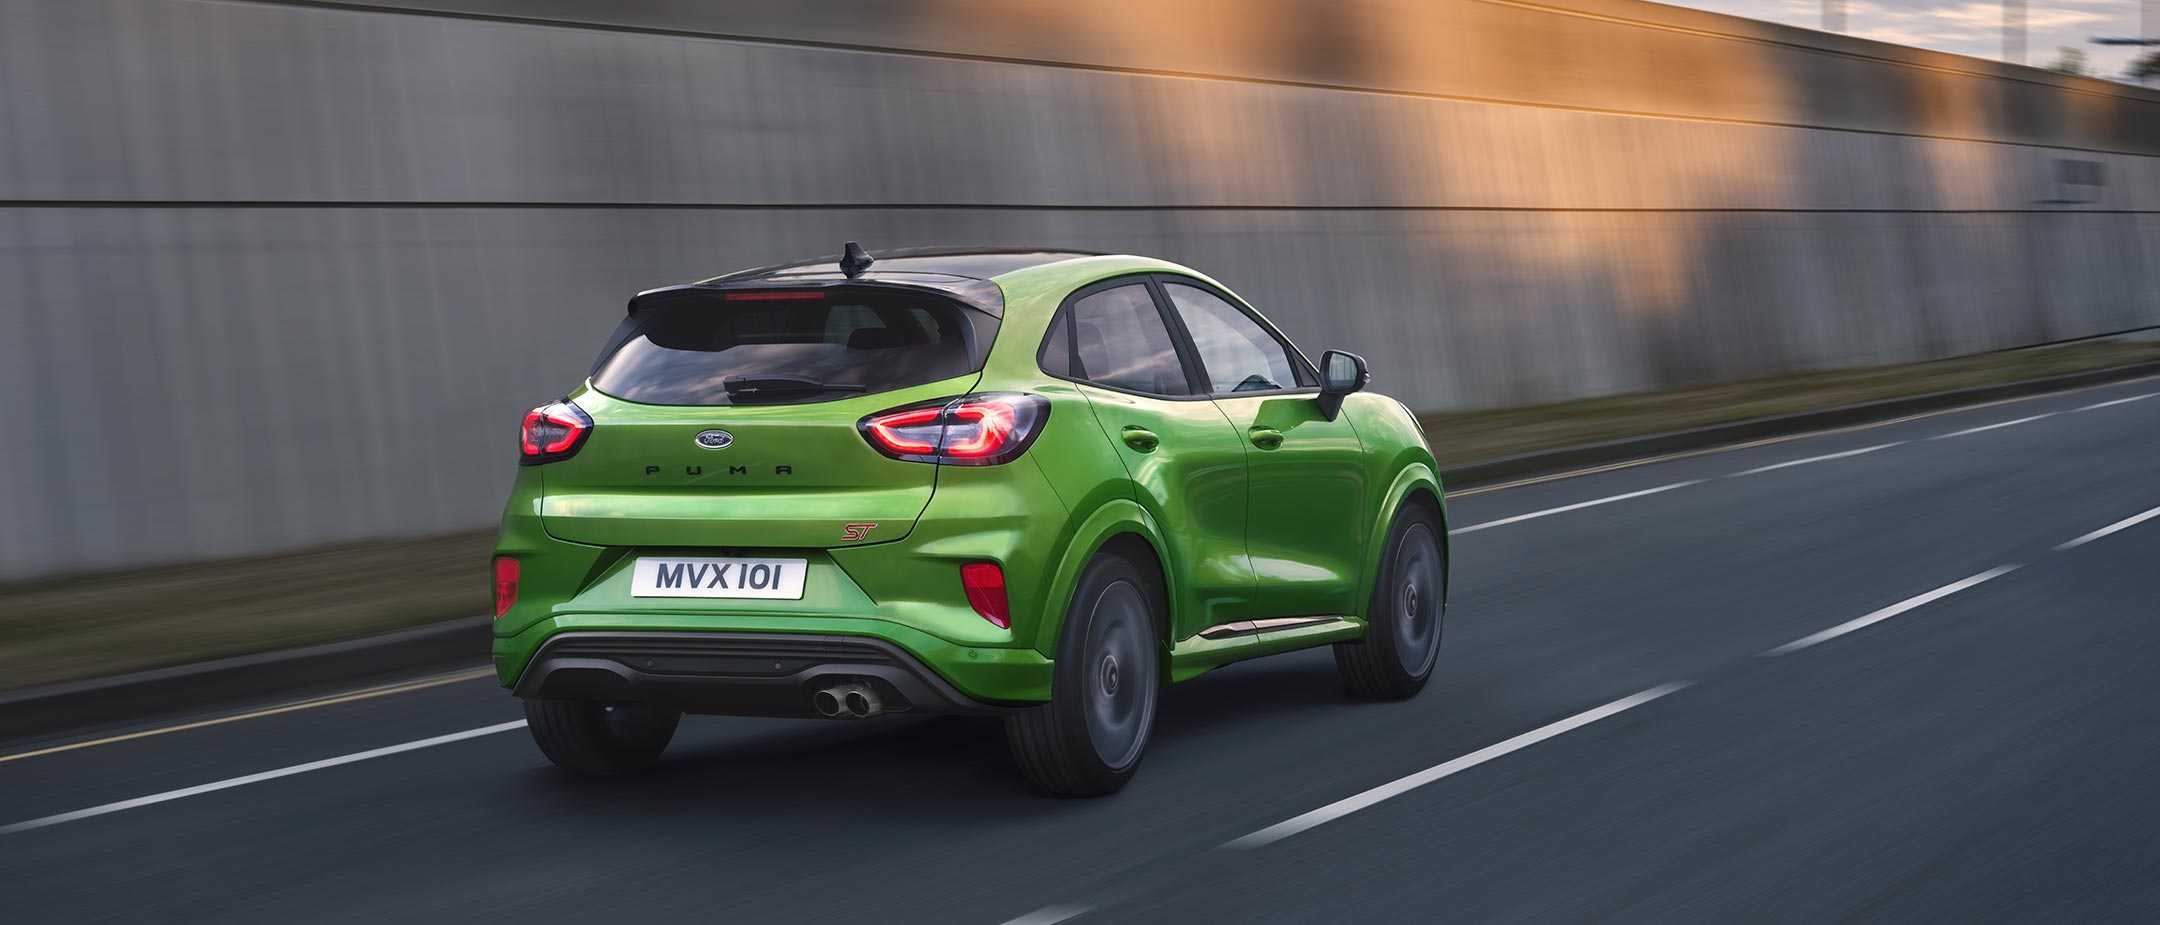 Green Ford Puma ST rear view driving on road